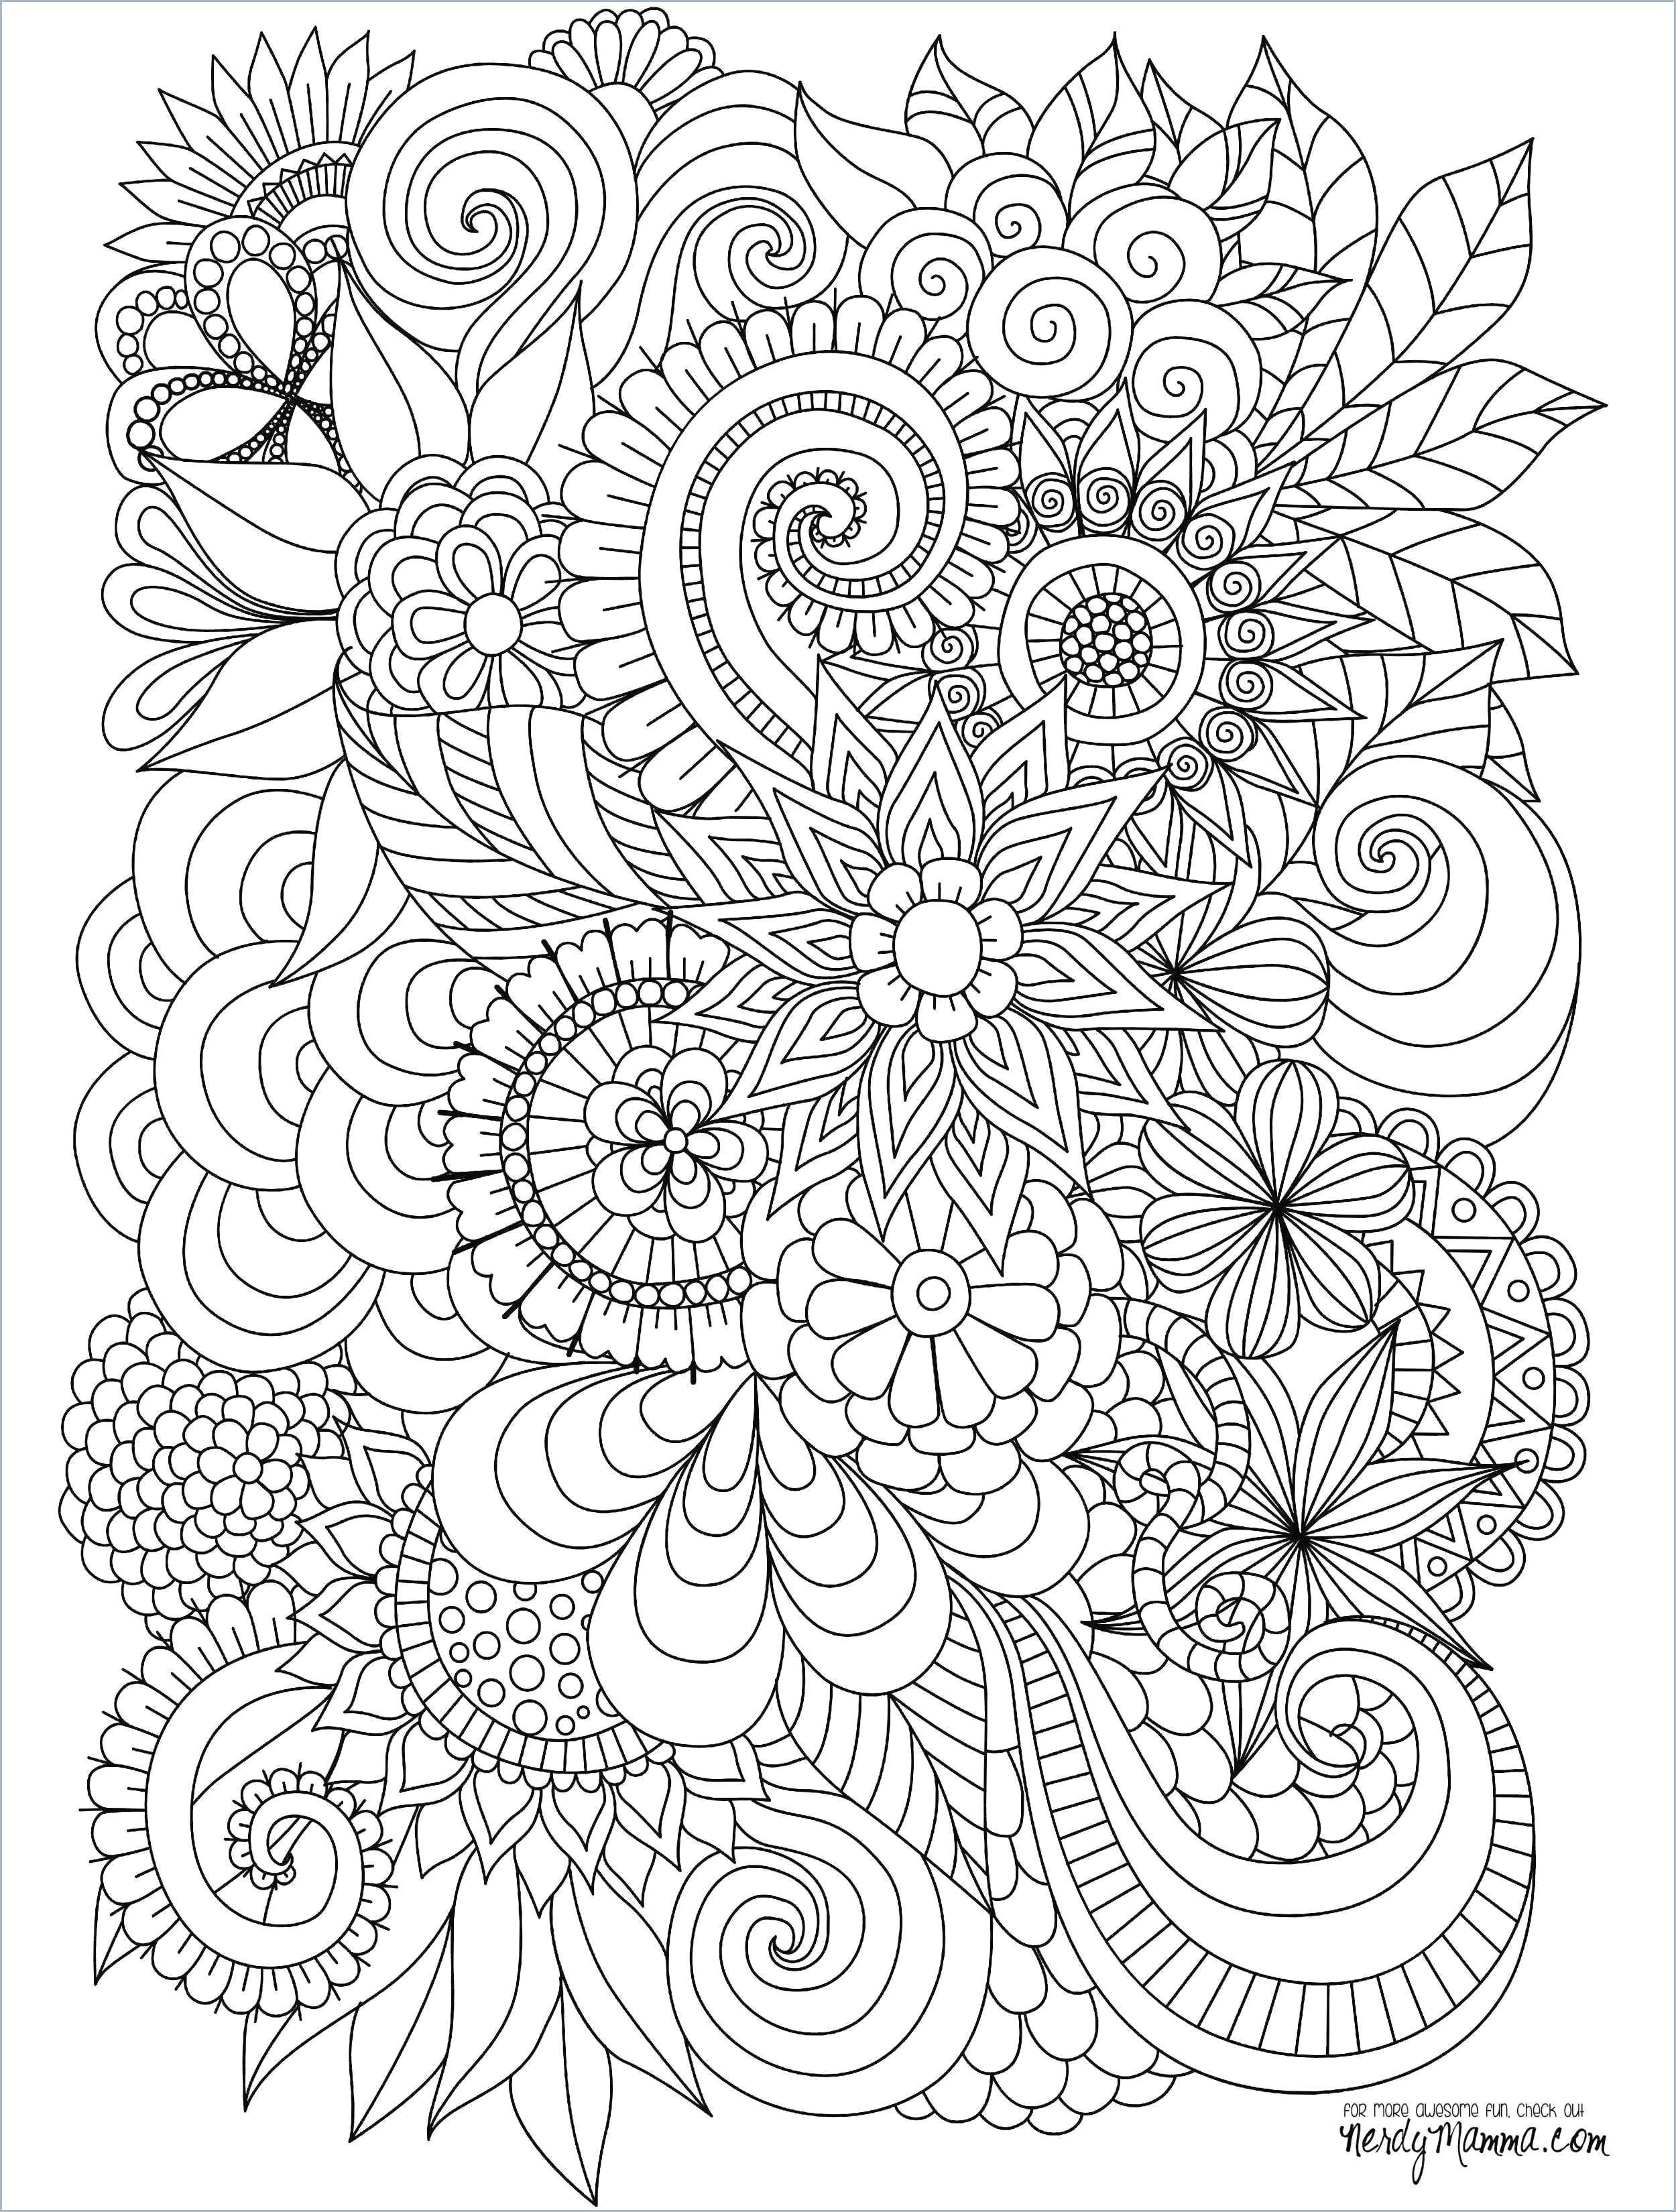 coloring sheets for kids beautiful design coloring books free download design coloring book best of coloring